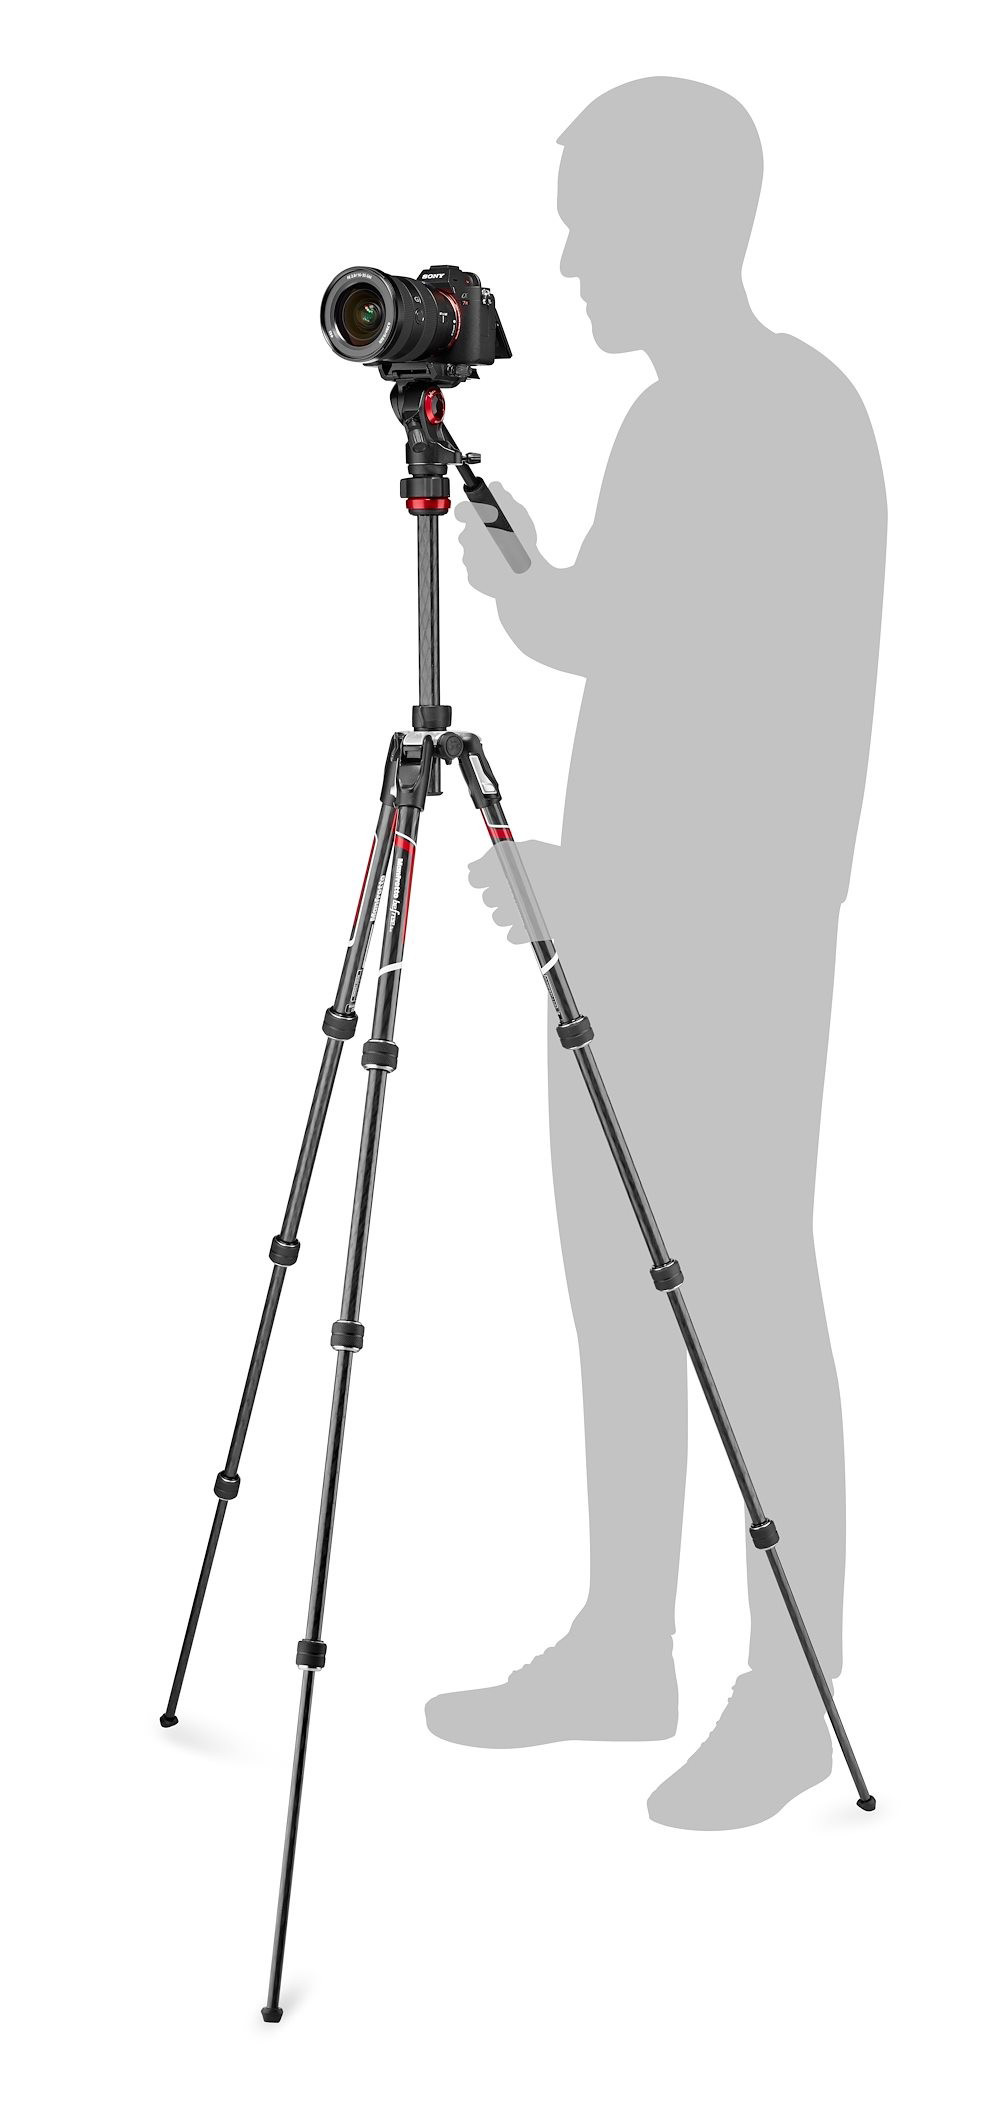 Manfrotto befree live カーボンT三脚ビデオ雲台キット MVKBFRTC-LIVE